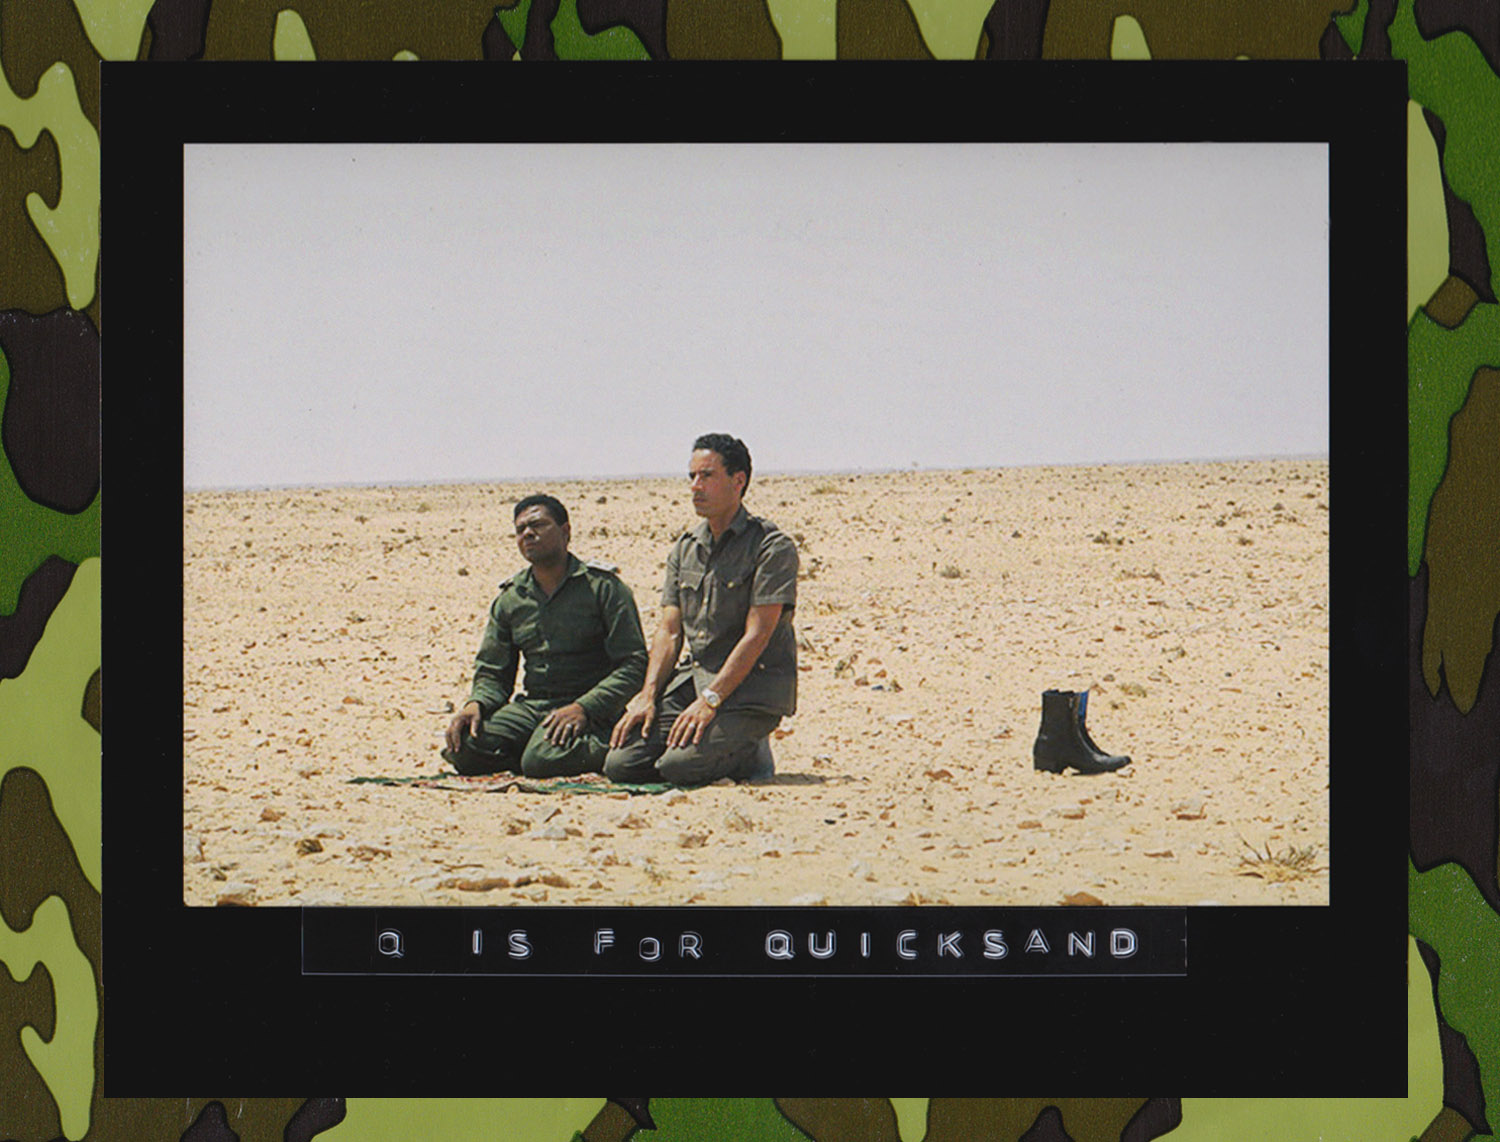 Col. Muammar Gaddafi and Major-General Abu-Bakr Yunis Jaber pray in the Libyan desert near Surt, August 1973, during the early days of the Al-Fateh Revolution in Libya. (Photographer Unknown)